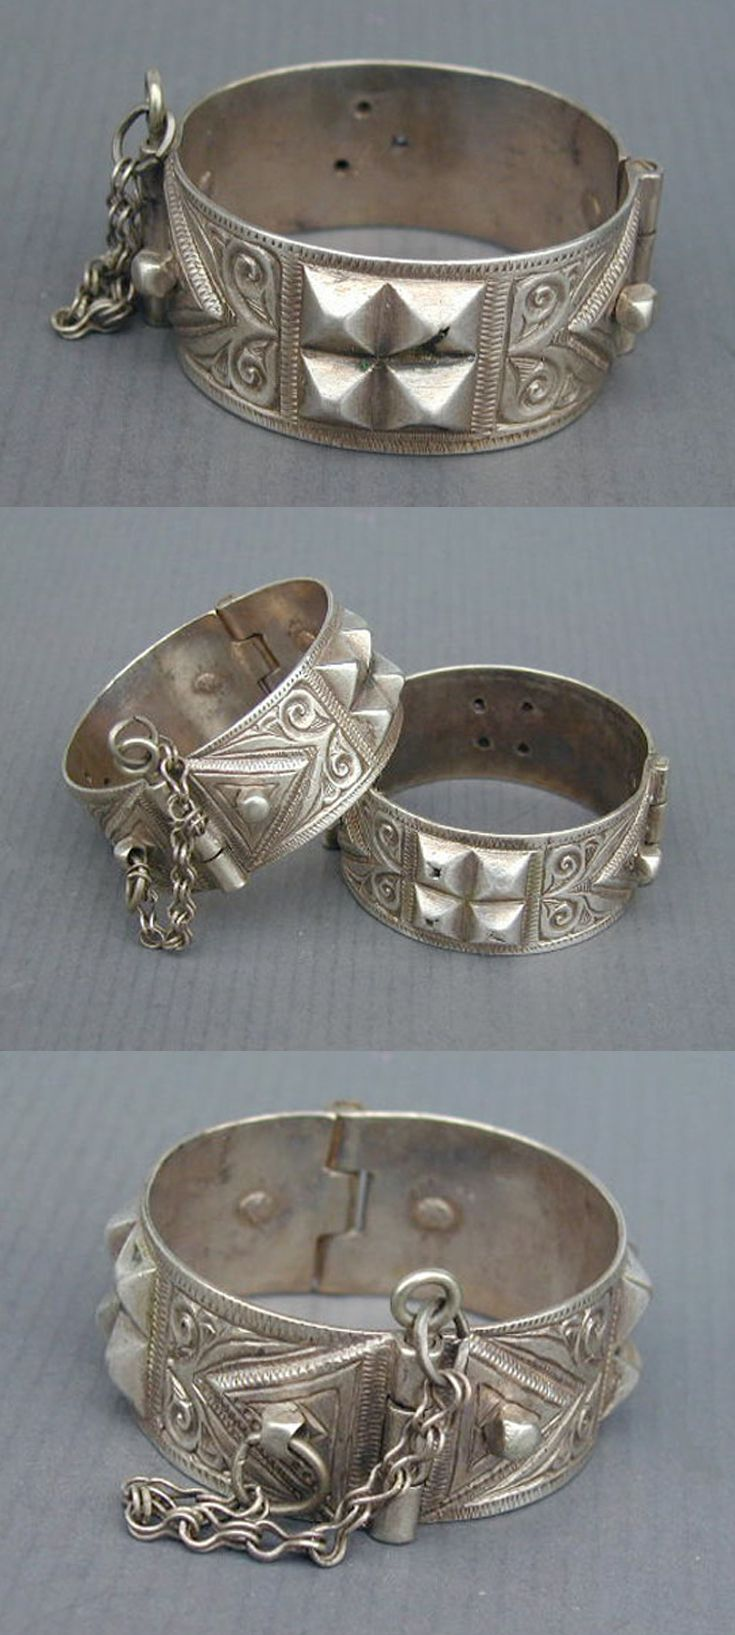 Algerian Amazigh Berber hinged bracelets from Aurès; excellent alloy of silver.  Early 20th century.  420$